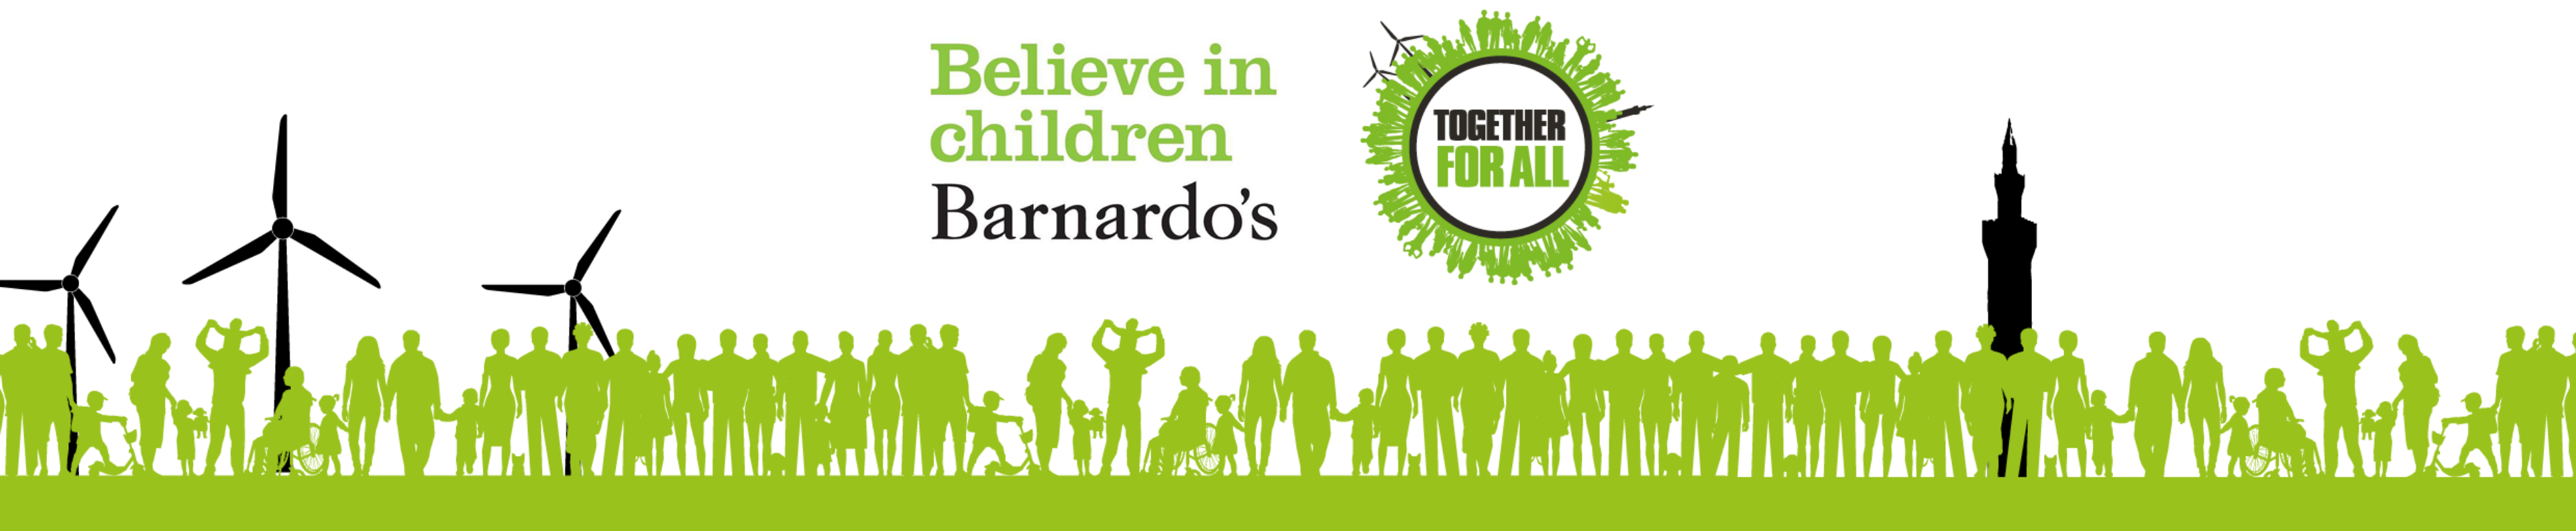 Barnardo's believe in children logo